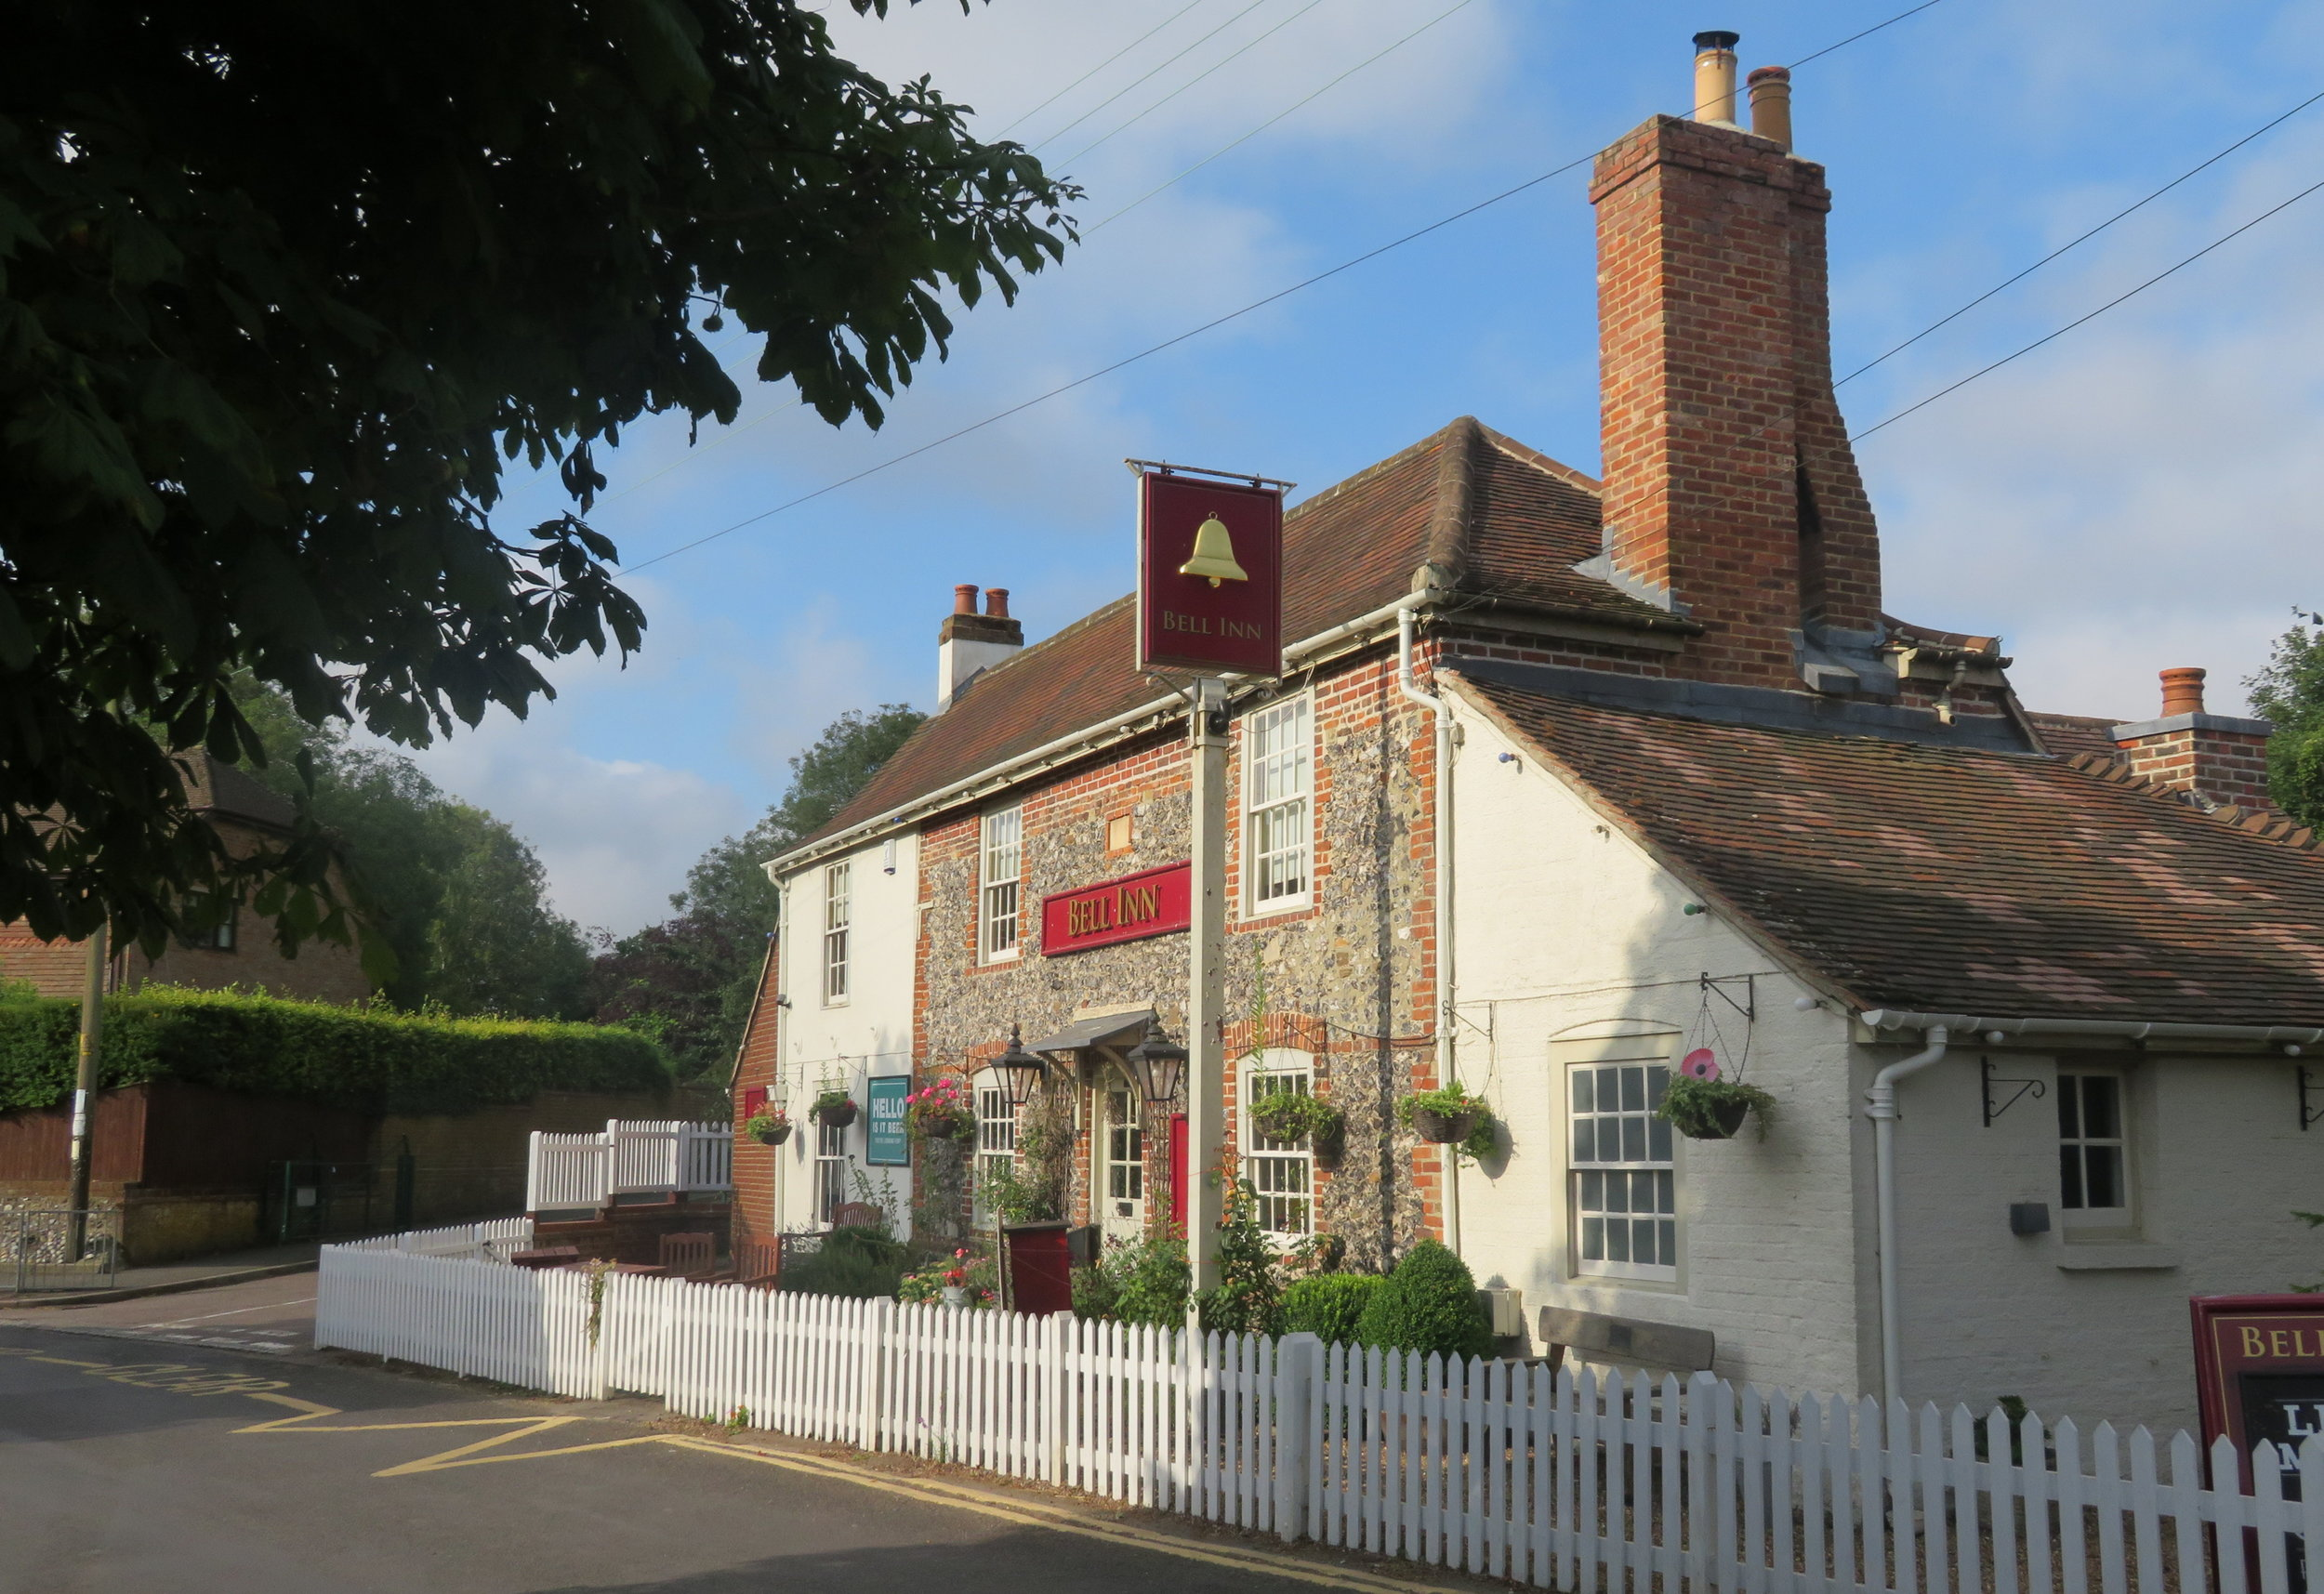 "Bell Inn Pub … As a sign proclaimed 'Our village pub is the hub!""'"